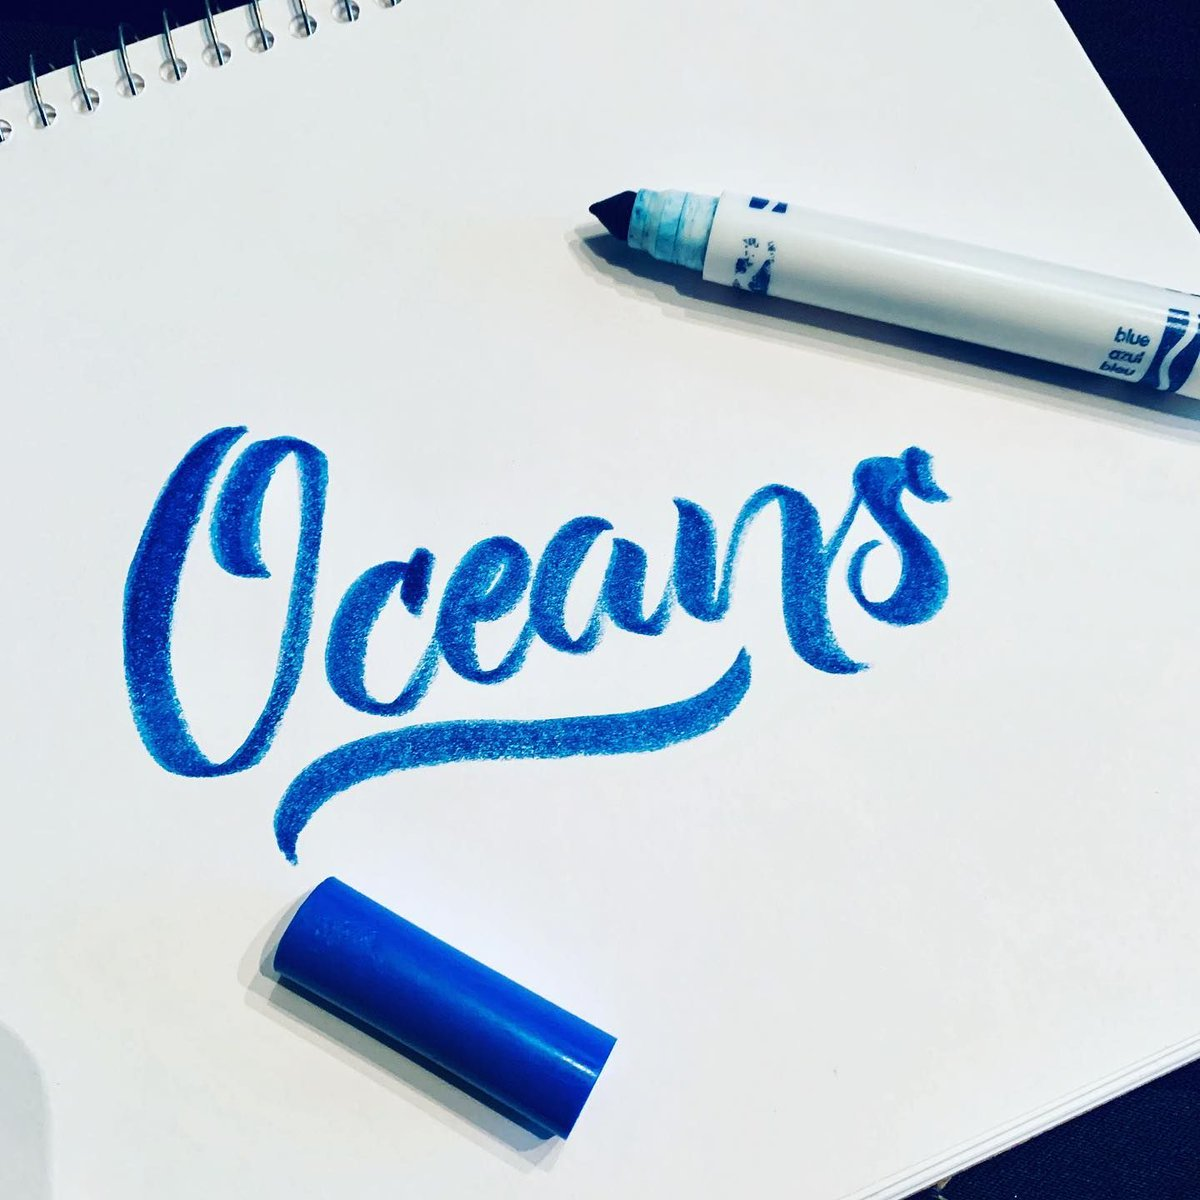 Day 28: Oceans, another gem by @hillsongunited. Love this song. @taya_gaukrodger lead this song, she's a epic singer. - #crayligraphy #20minutesofcray #growthmindset #oceans #hillsongunited #lettering #calligraphy #calligraphylettering #calligraphyart #calligrapherpic.twitter.com/gnB6vatagl